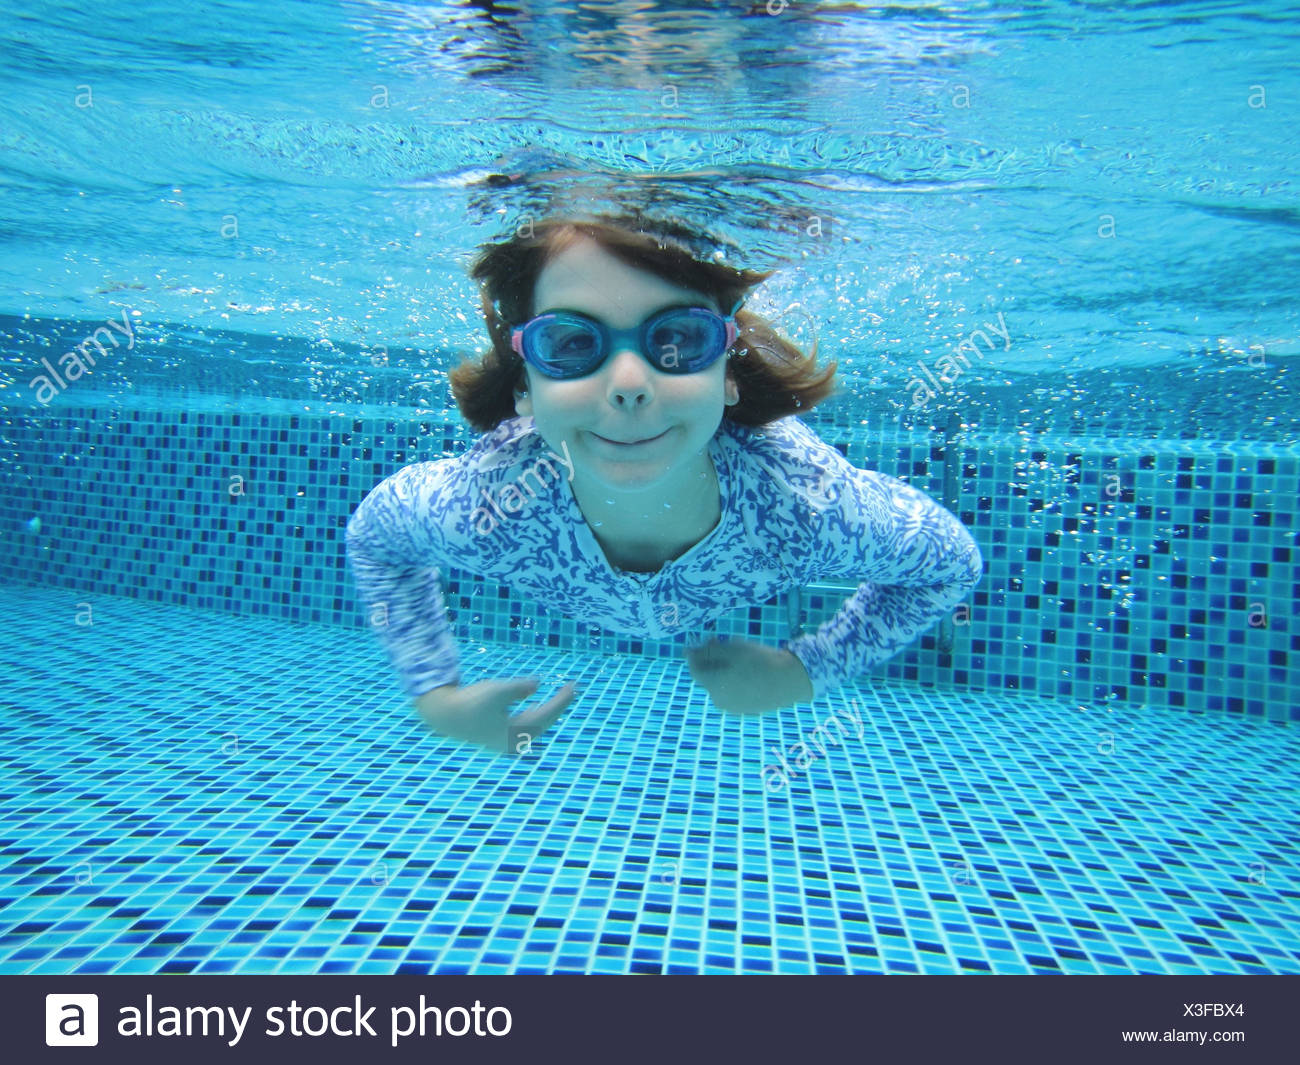 girl swimming underwater in swimming pool stock photo. Black Bedroom Furniture Sets. Home Design Ideas